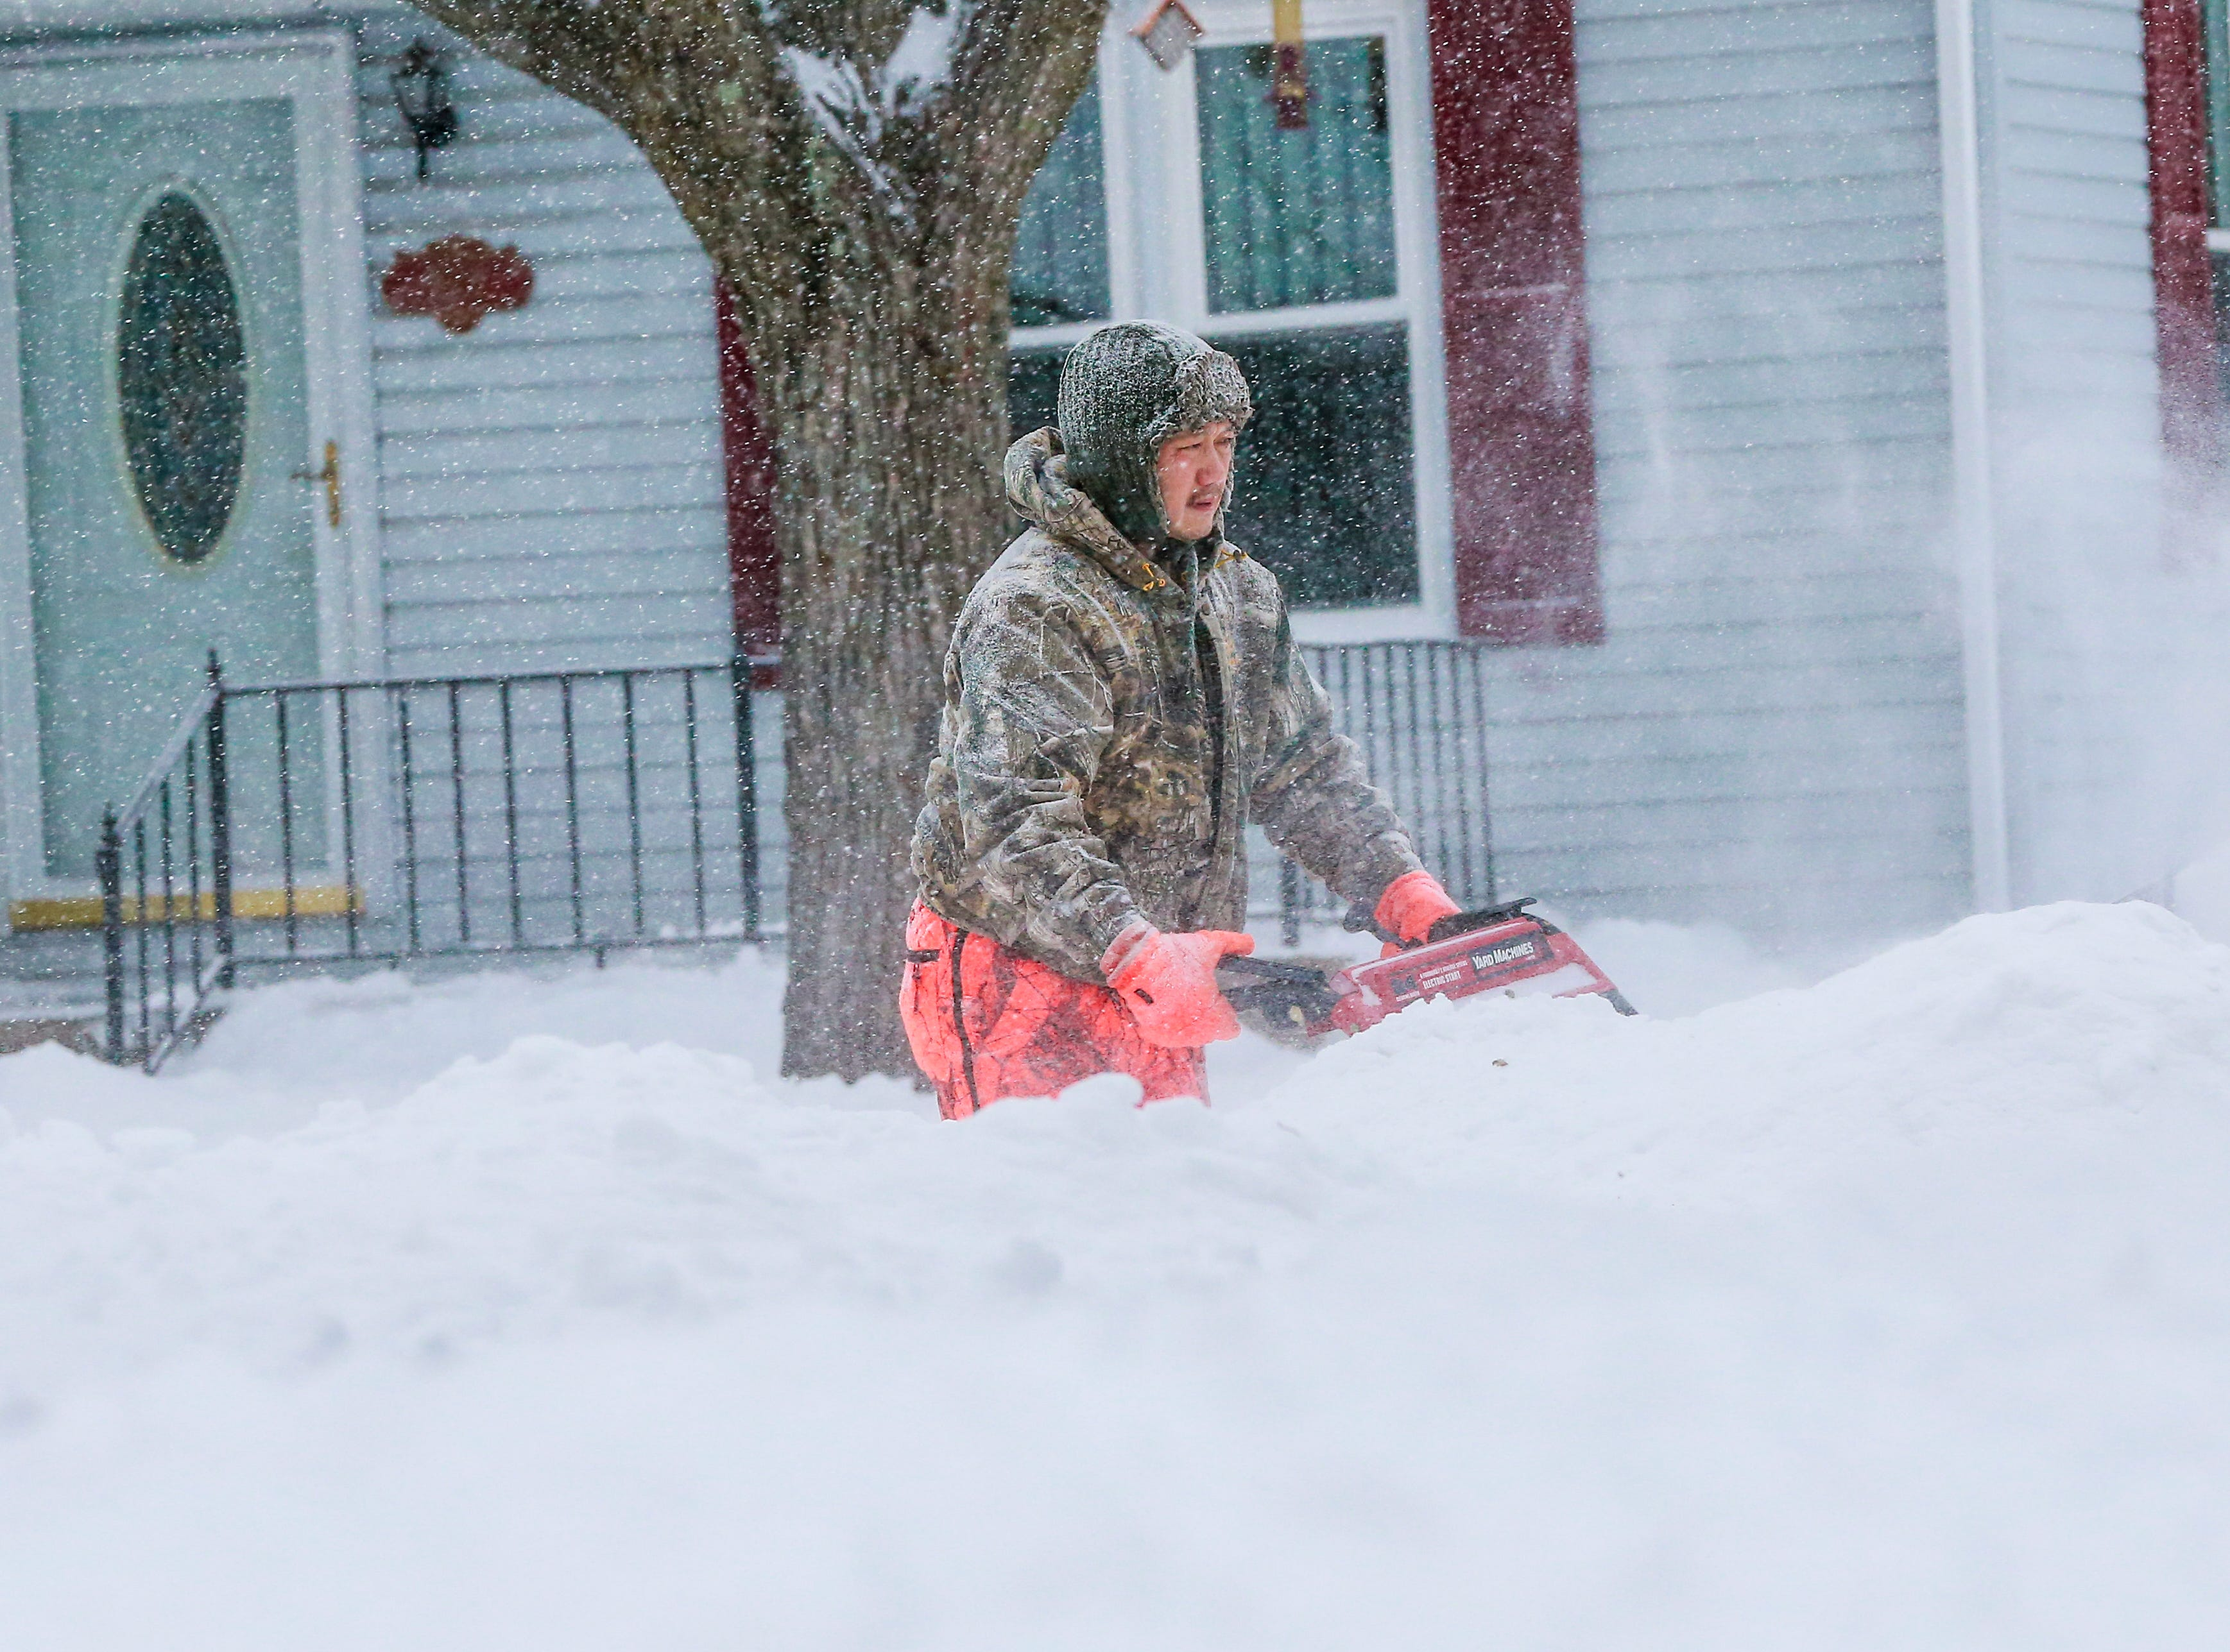 Kangshoua Her clearing snow on his sidewalk after a snowstorm Monday, Jan. 28, 2019, in Wausau, Wis.